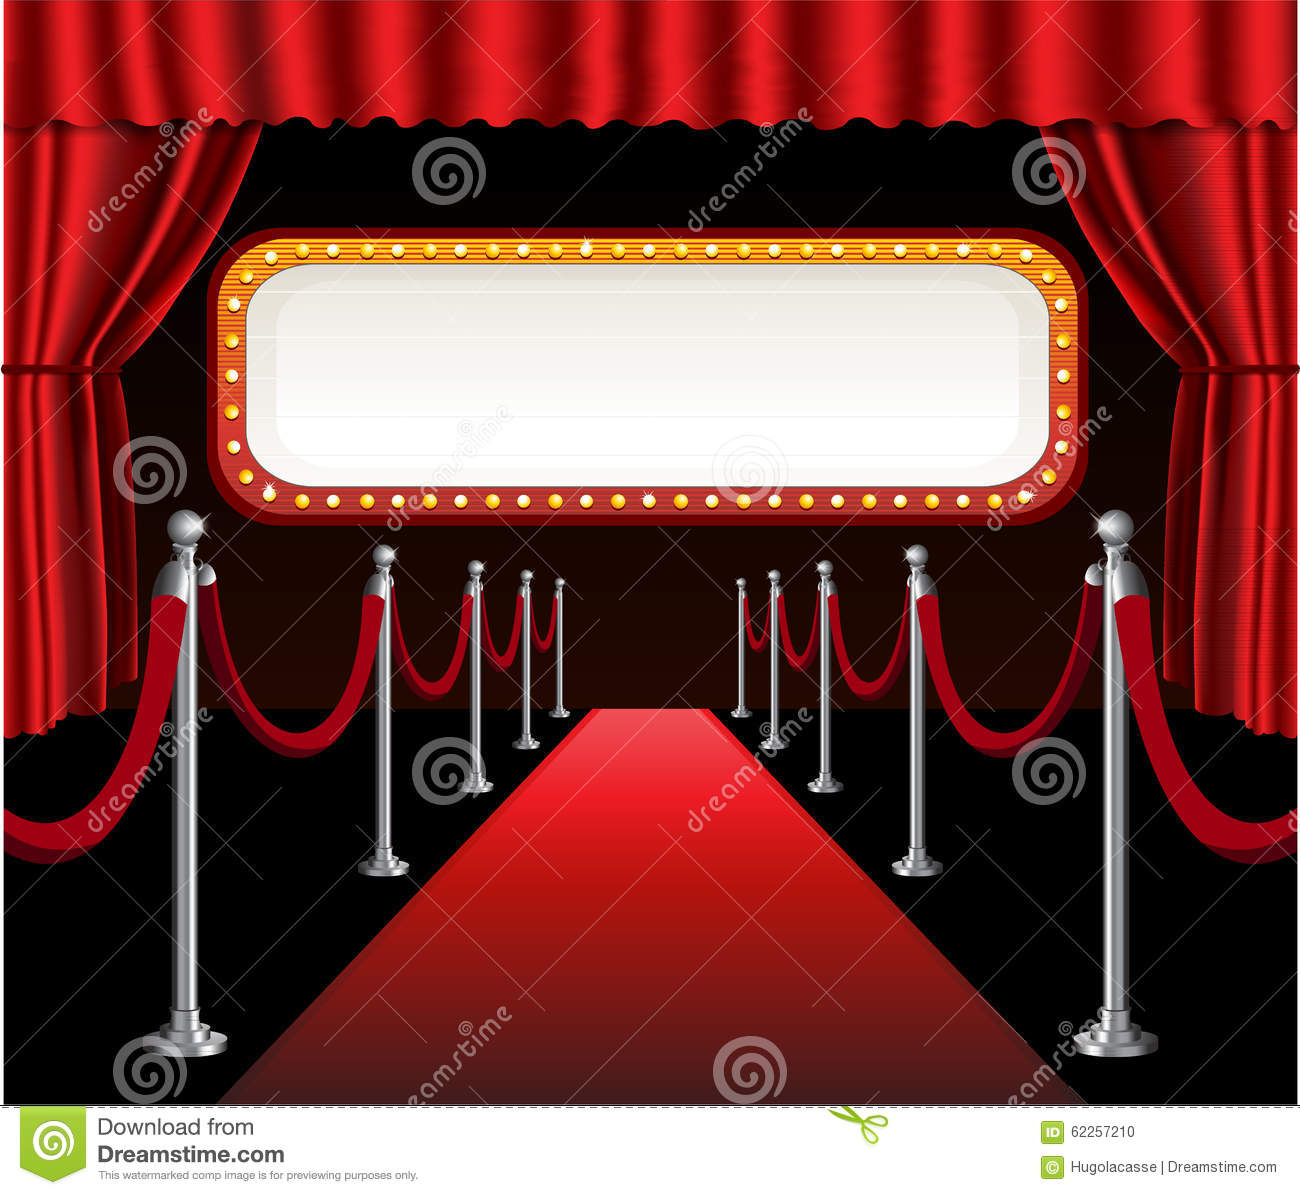 red carpet movie premiere elegant event red stock vector